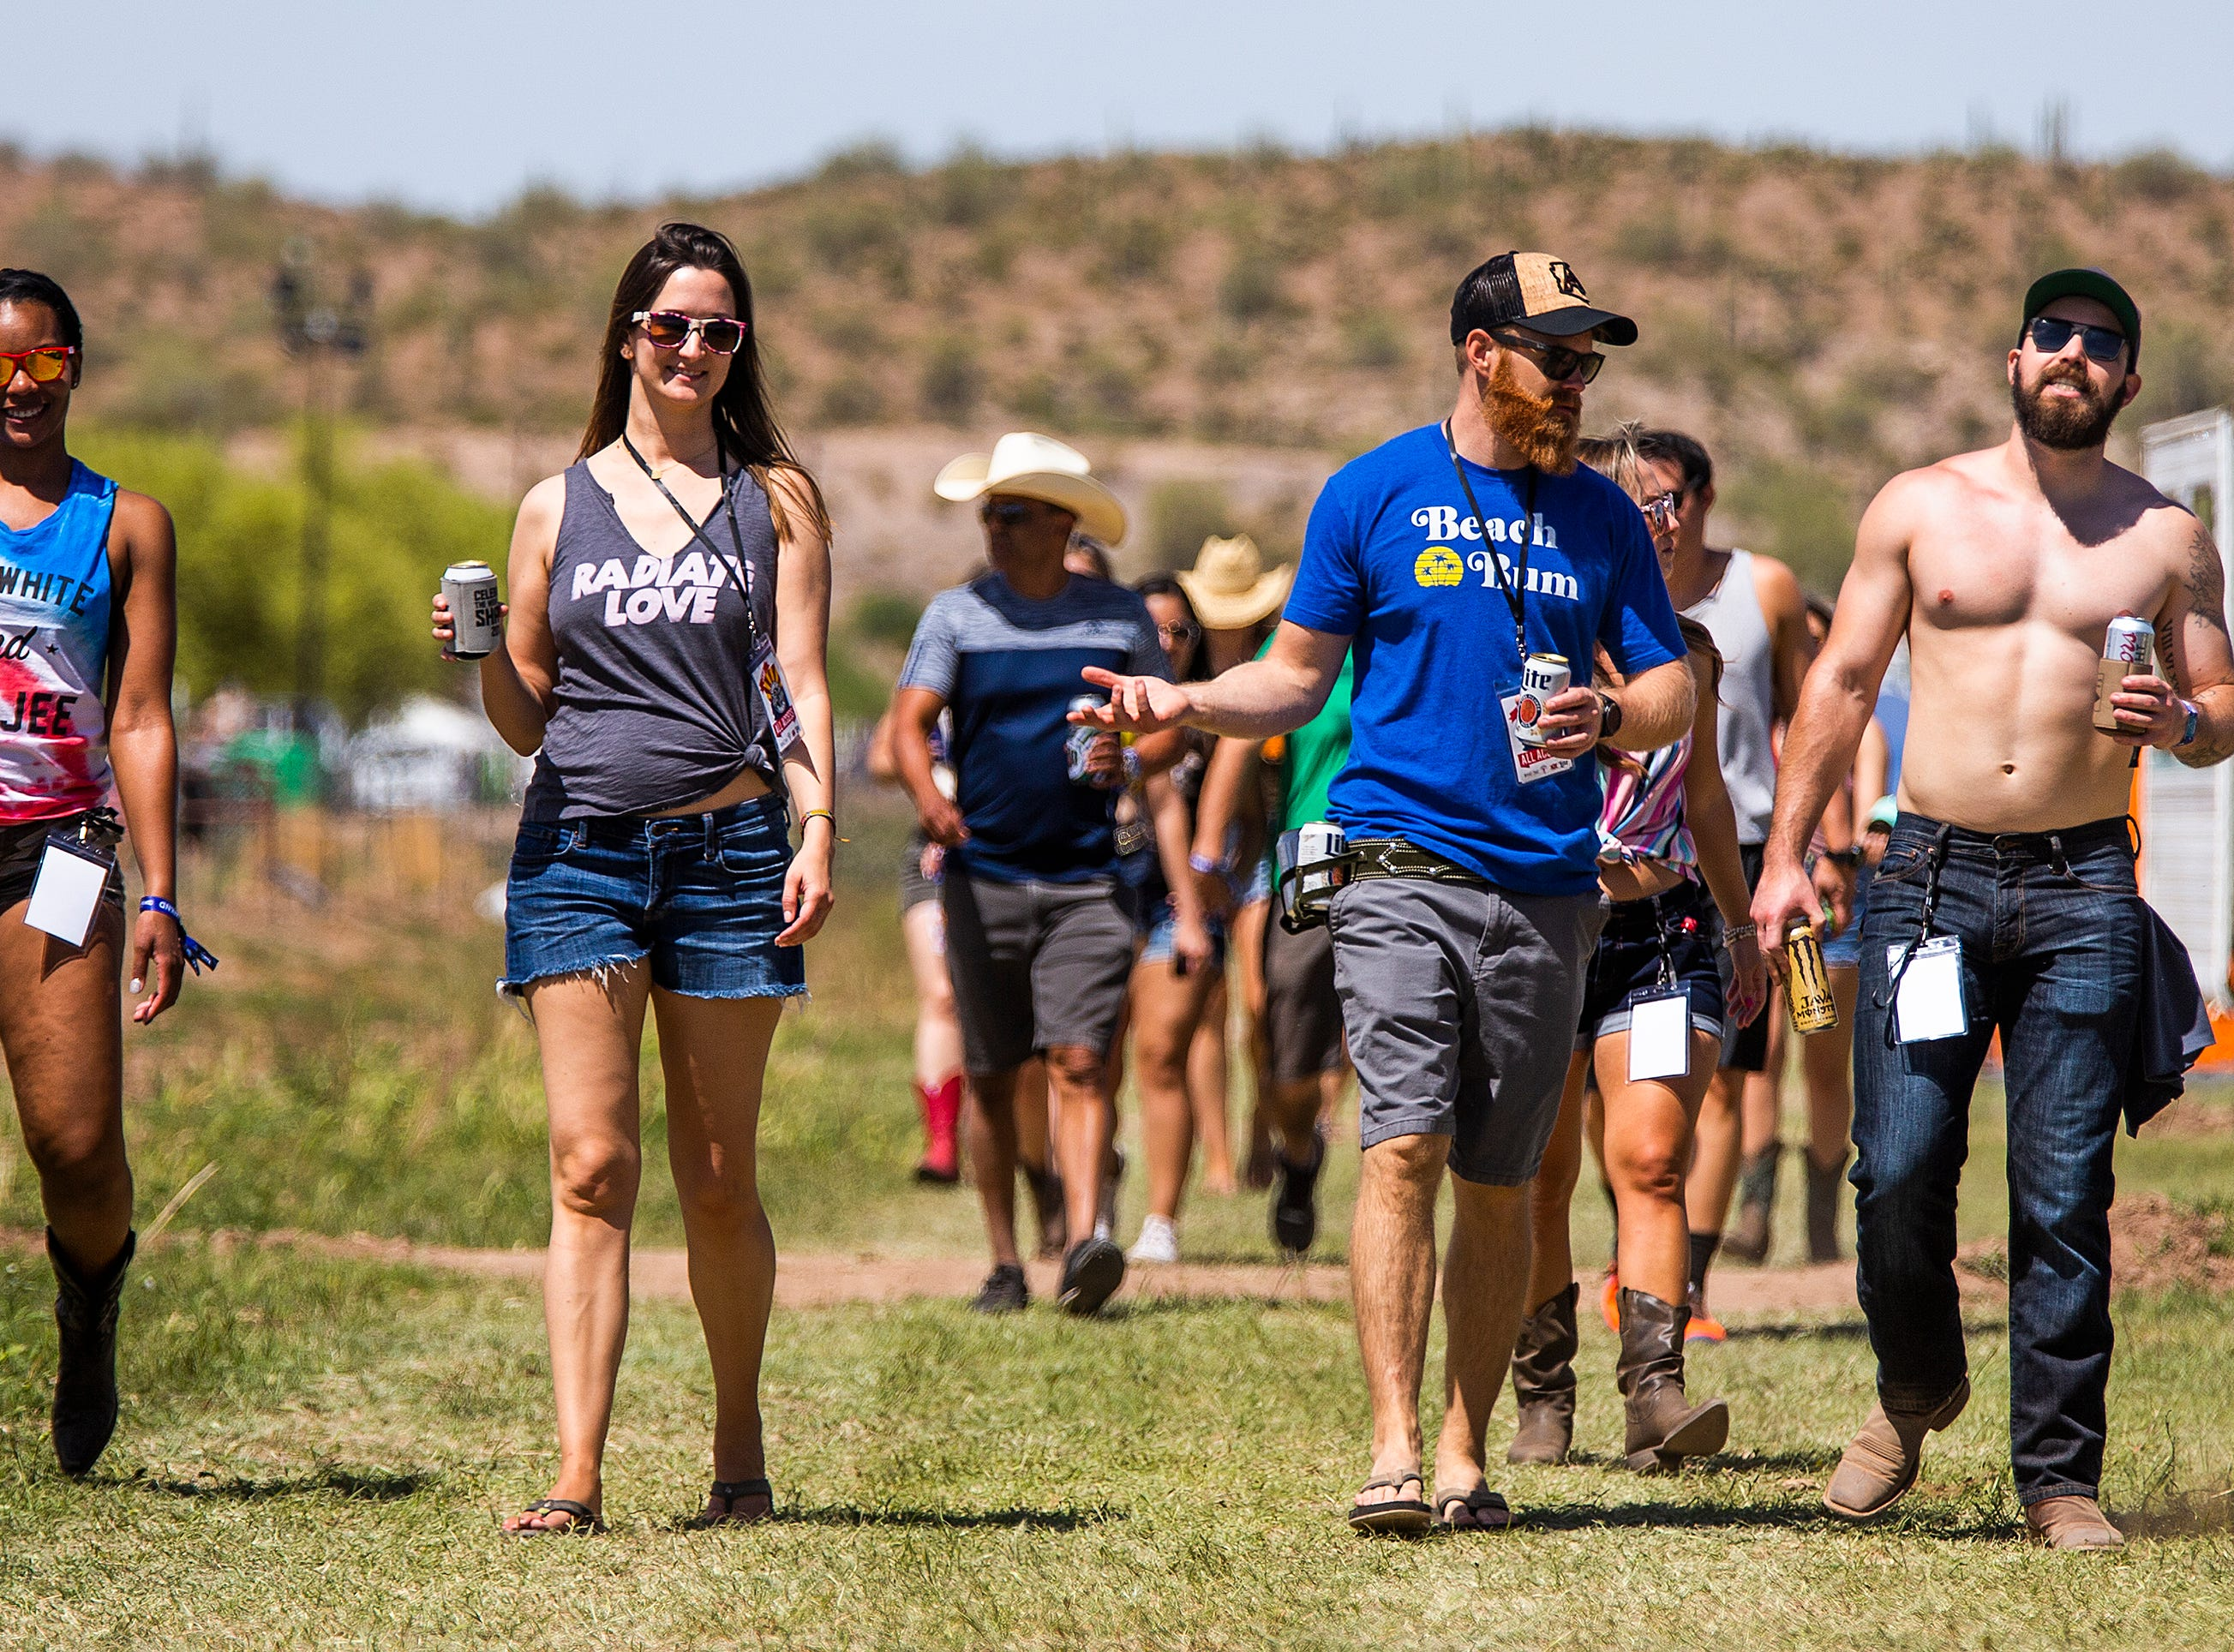 Country music fans walk through camp at the Country Thunder Arizona 2019 music festival outside Florence, Thursday, April 11, 2019.